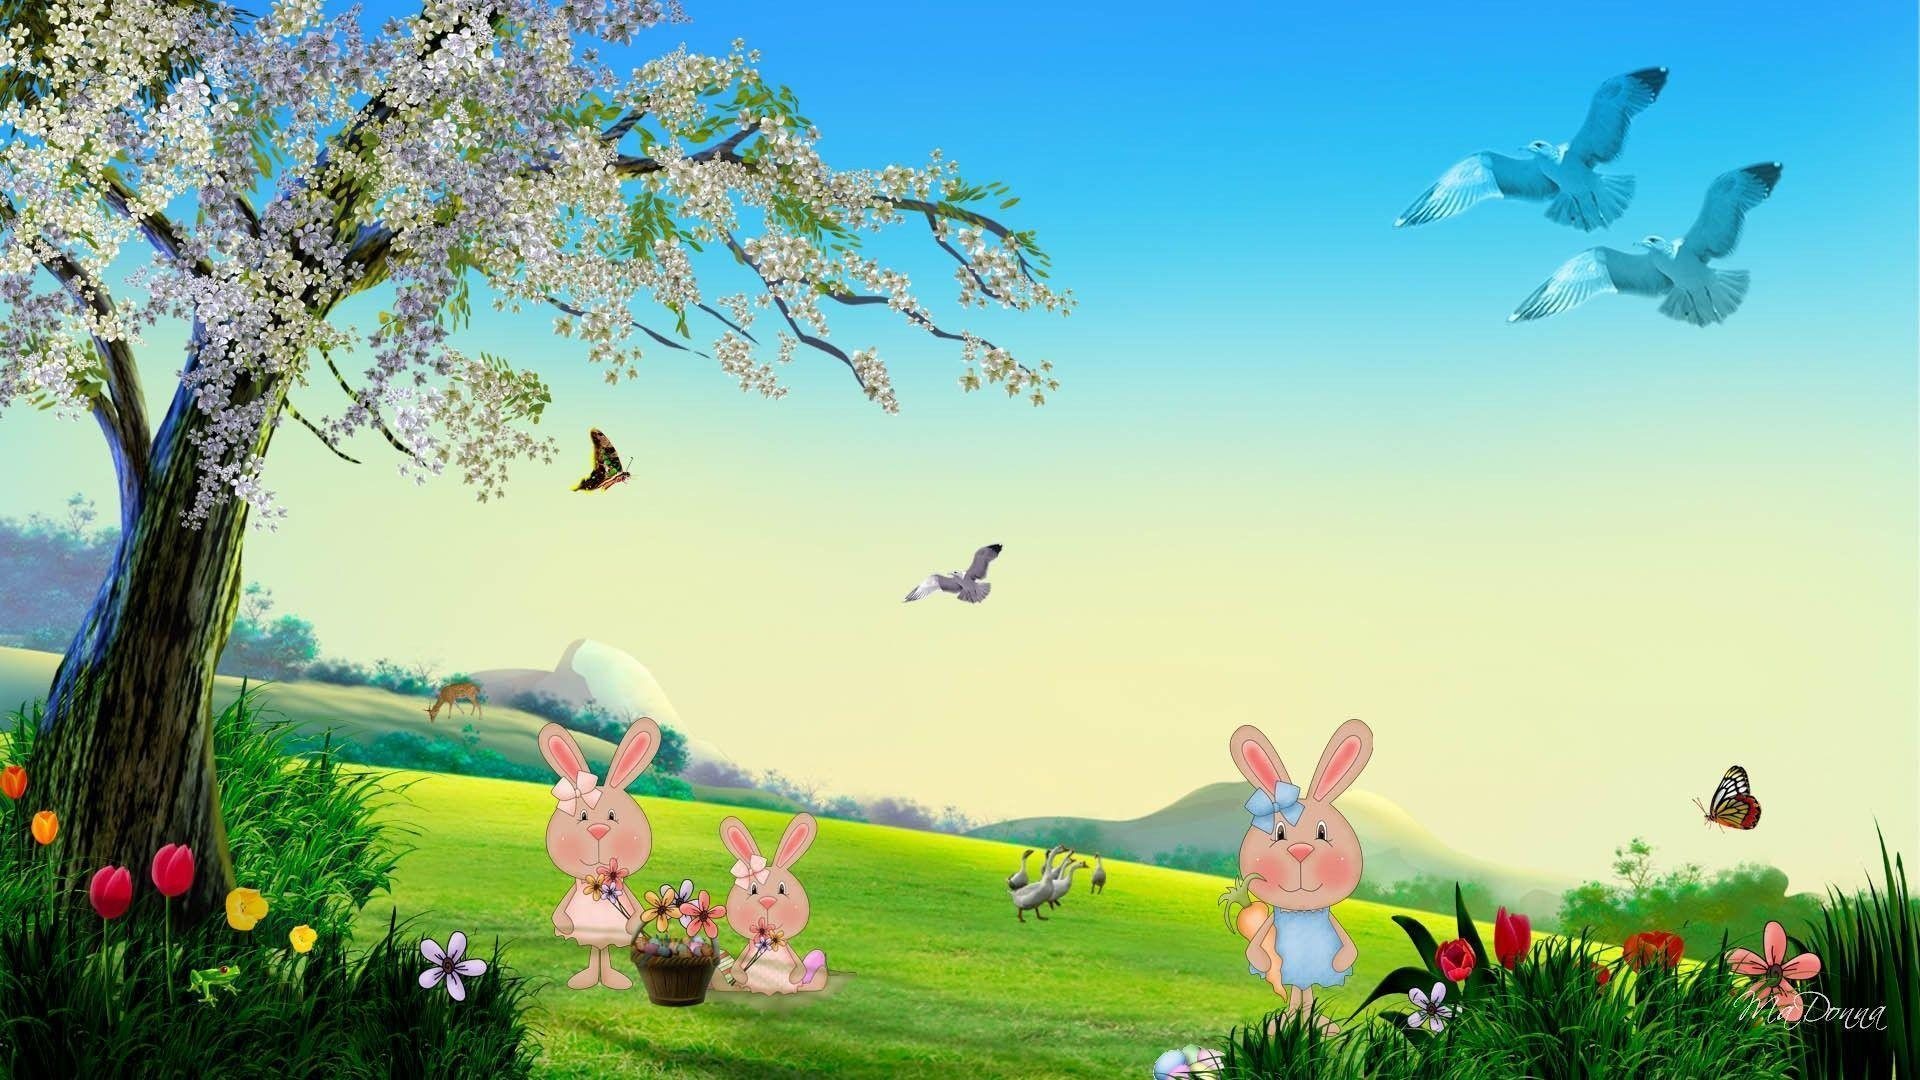 happy bunny wallpapers for desktop - photo #32